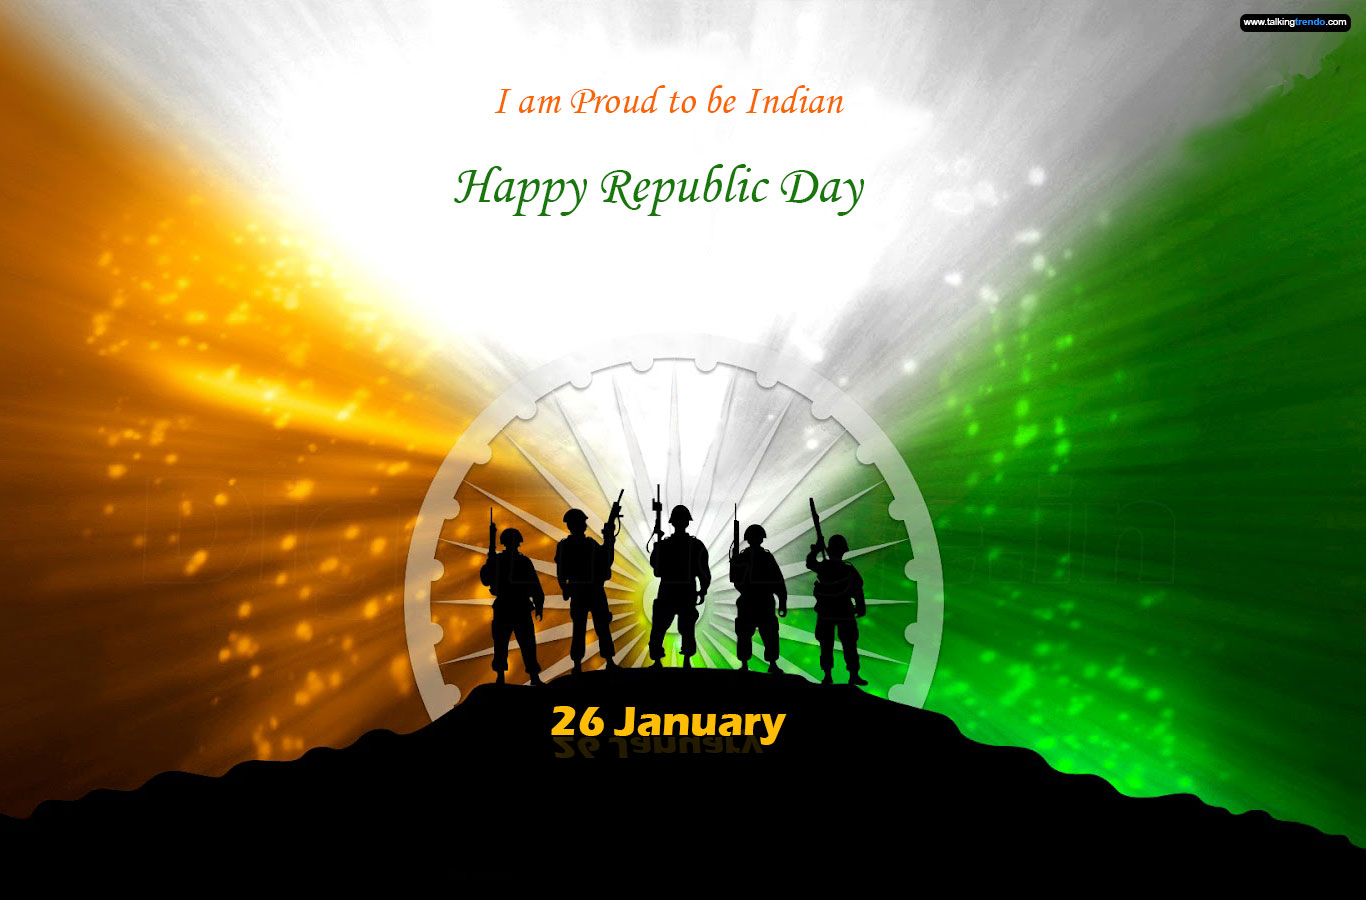 http://3.bp.blogspot.com/-Ol2jQo4NTzU/UQwE2a5EpxI/AAAAAAAAAis/FaQv4CDhfyQ/s1600/January-26-th-happy-republic-day-2013-jai-bharat-indian-greetings.jpg